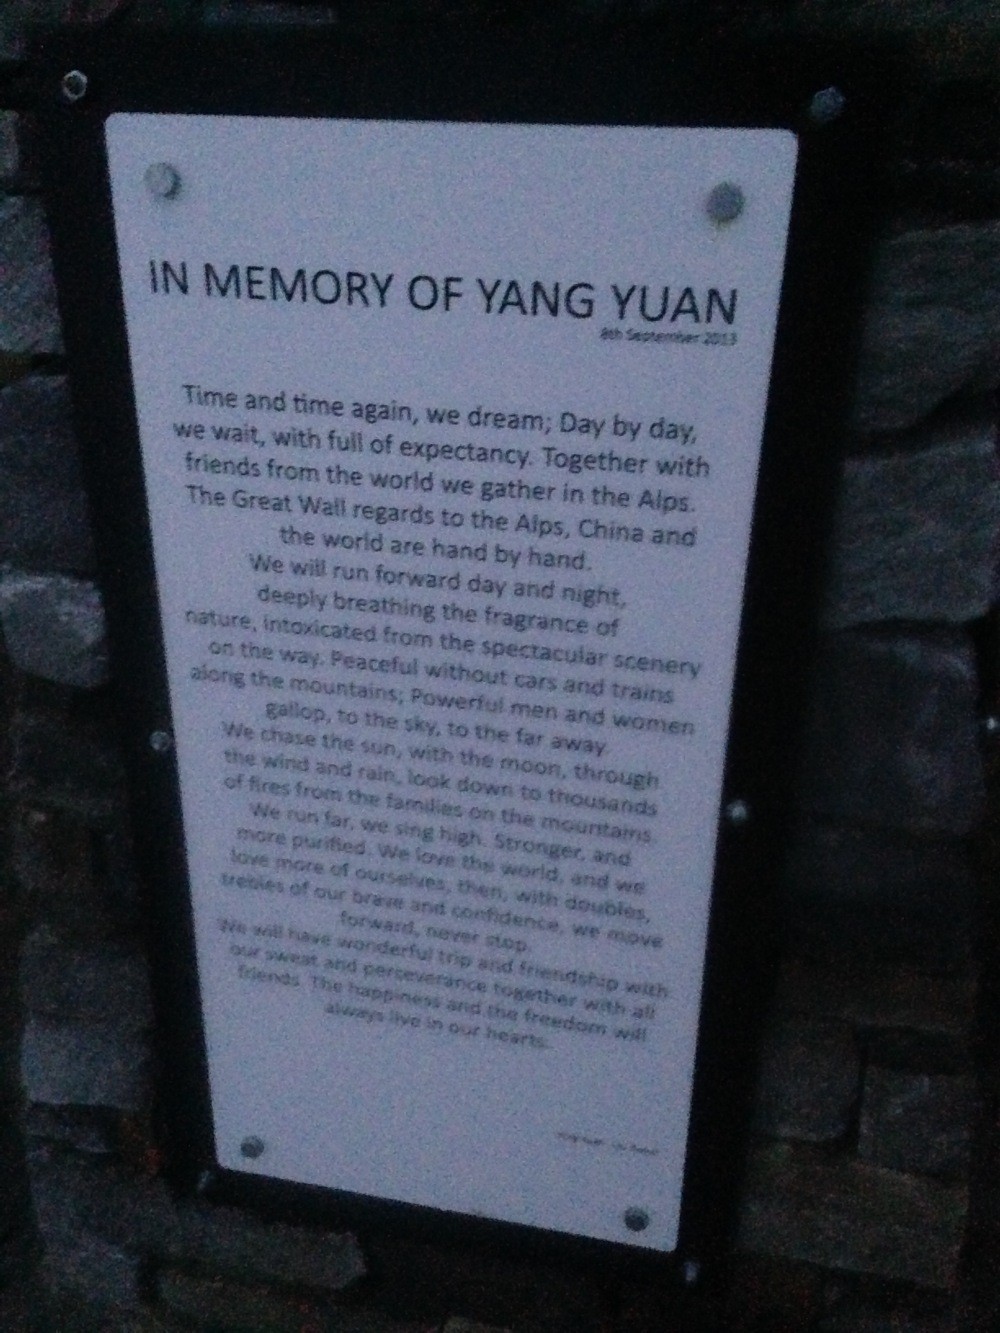 The memorial to a Chinese runner who died in a freak accident in 2013. Reading this at dusk in the mist was an eerie experience.